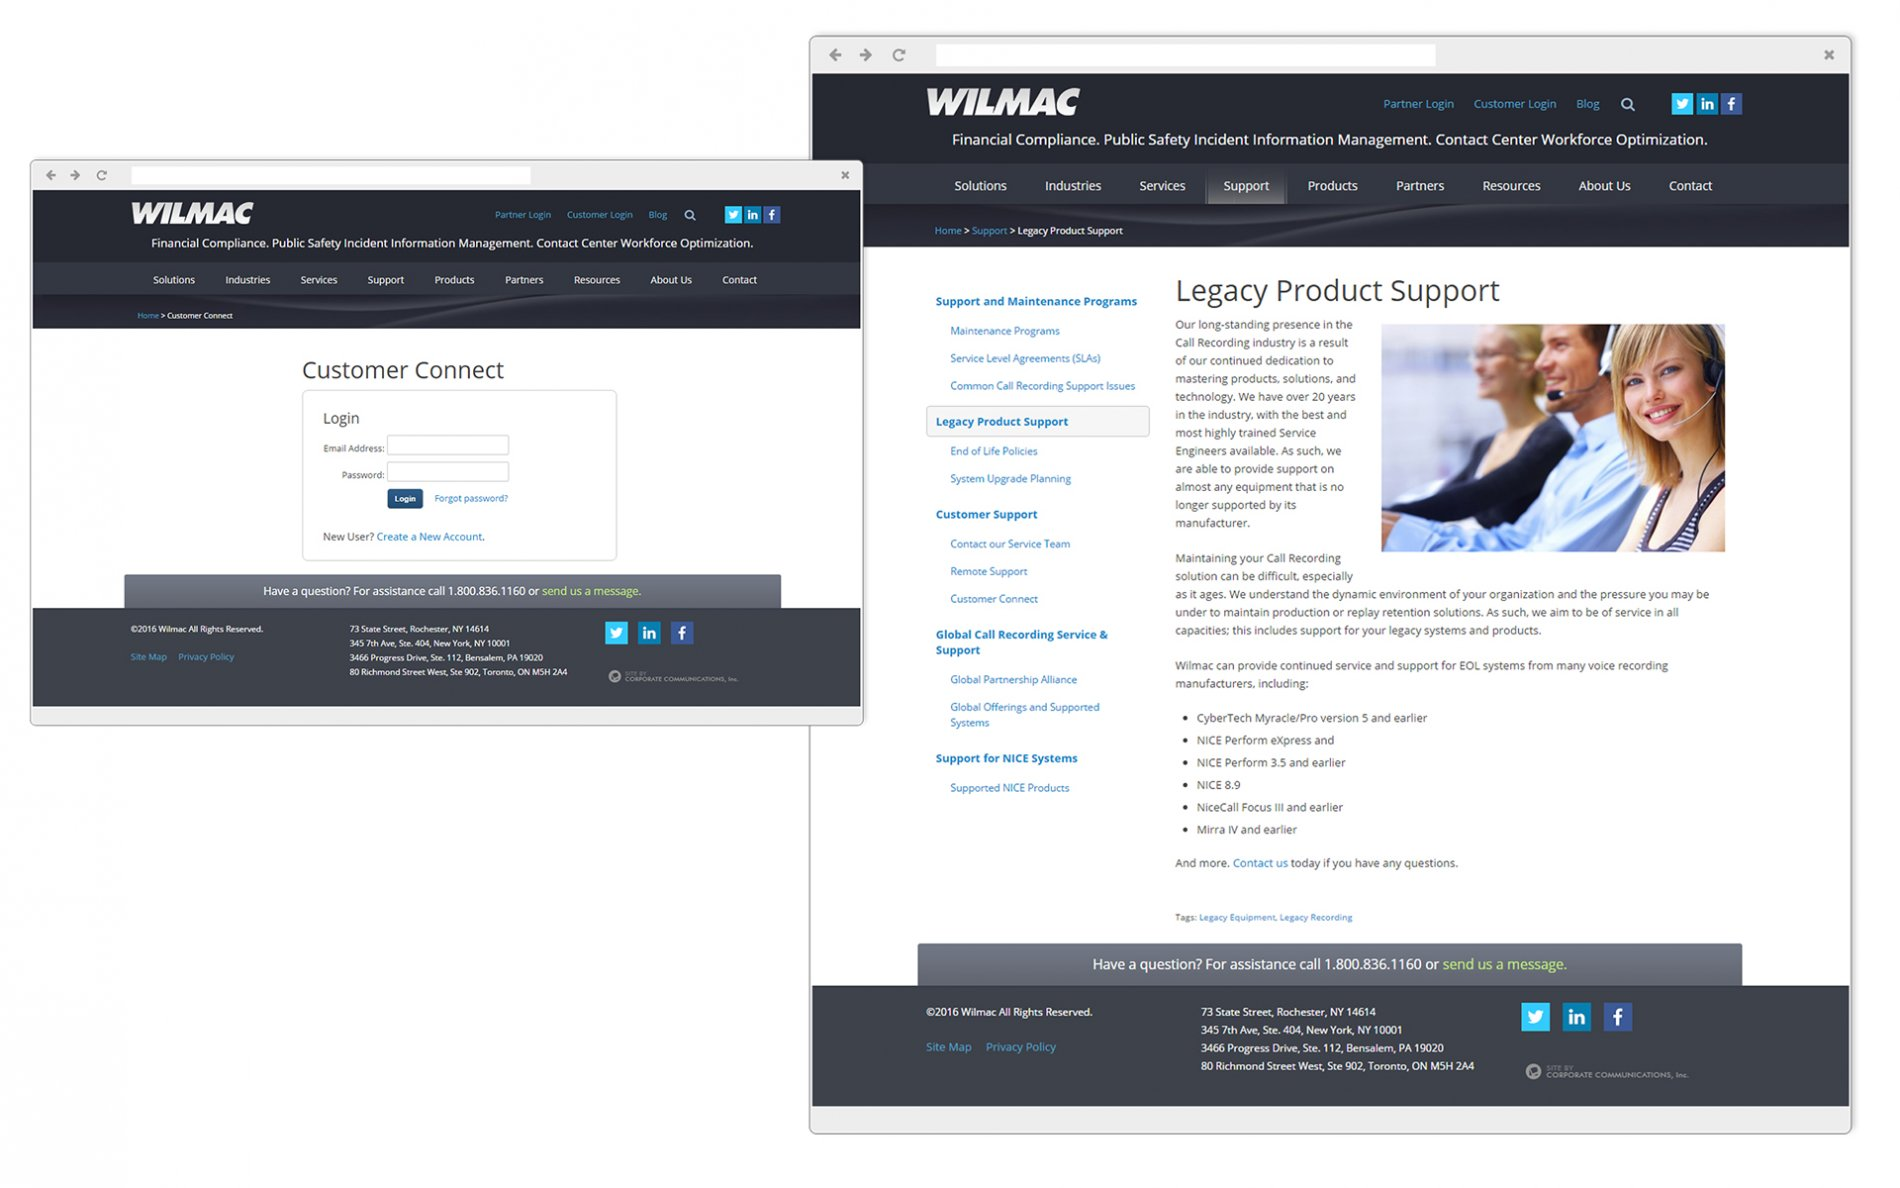 Wilmac Customer Connect - Private Customer Portal and Support page